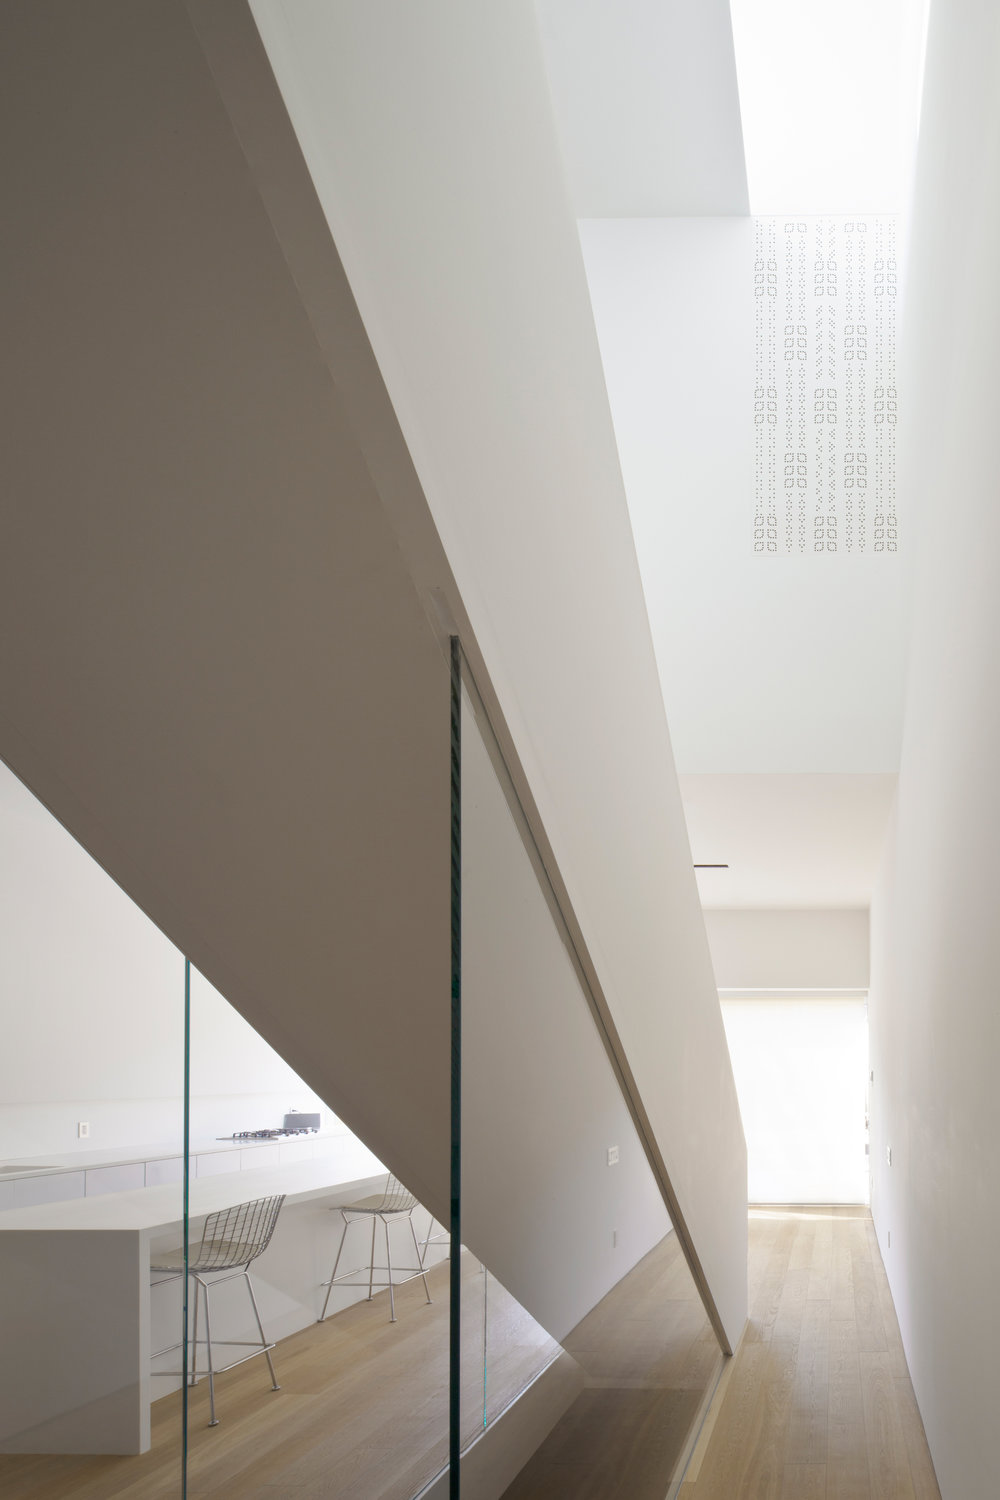 Robert House - Stair interior glass fritt